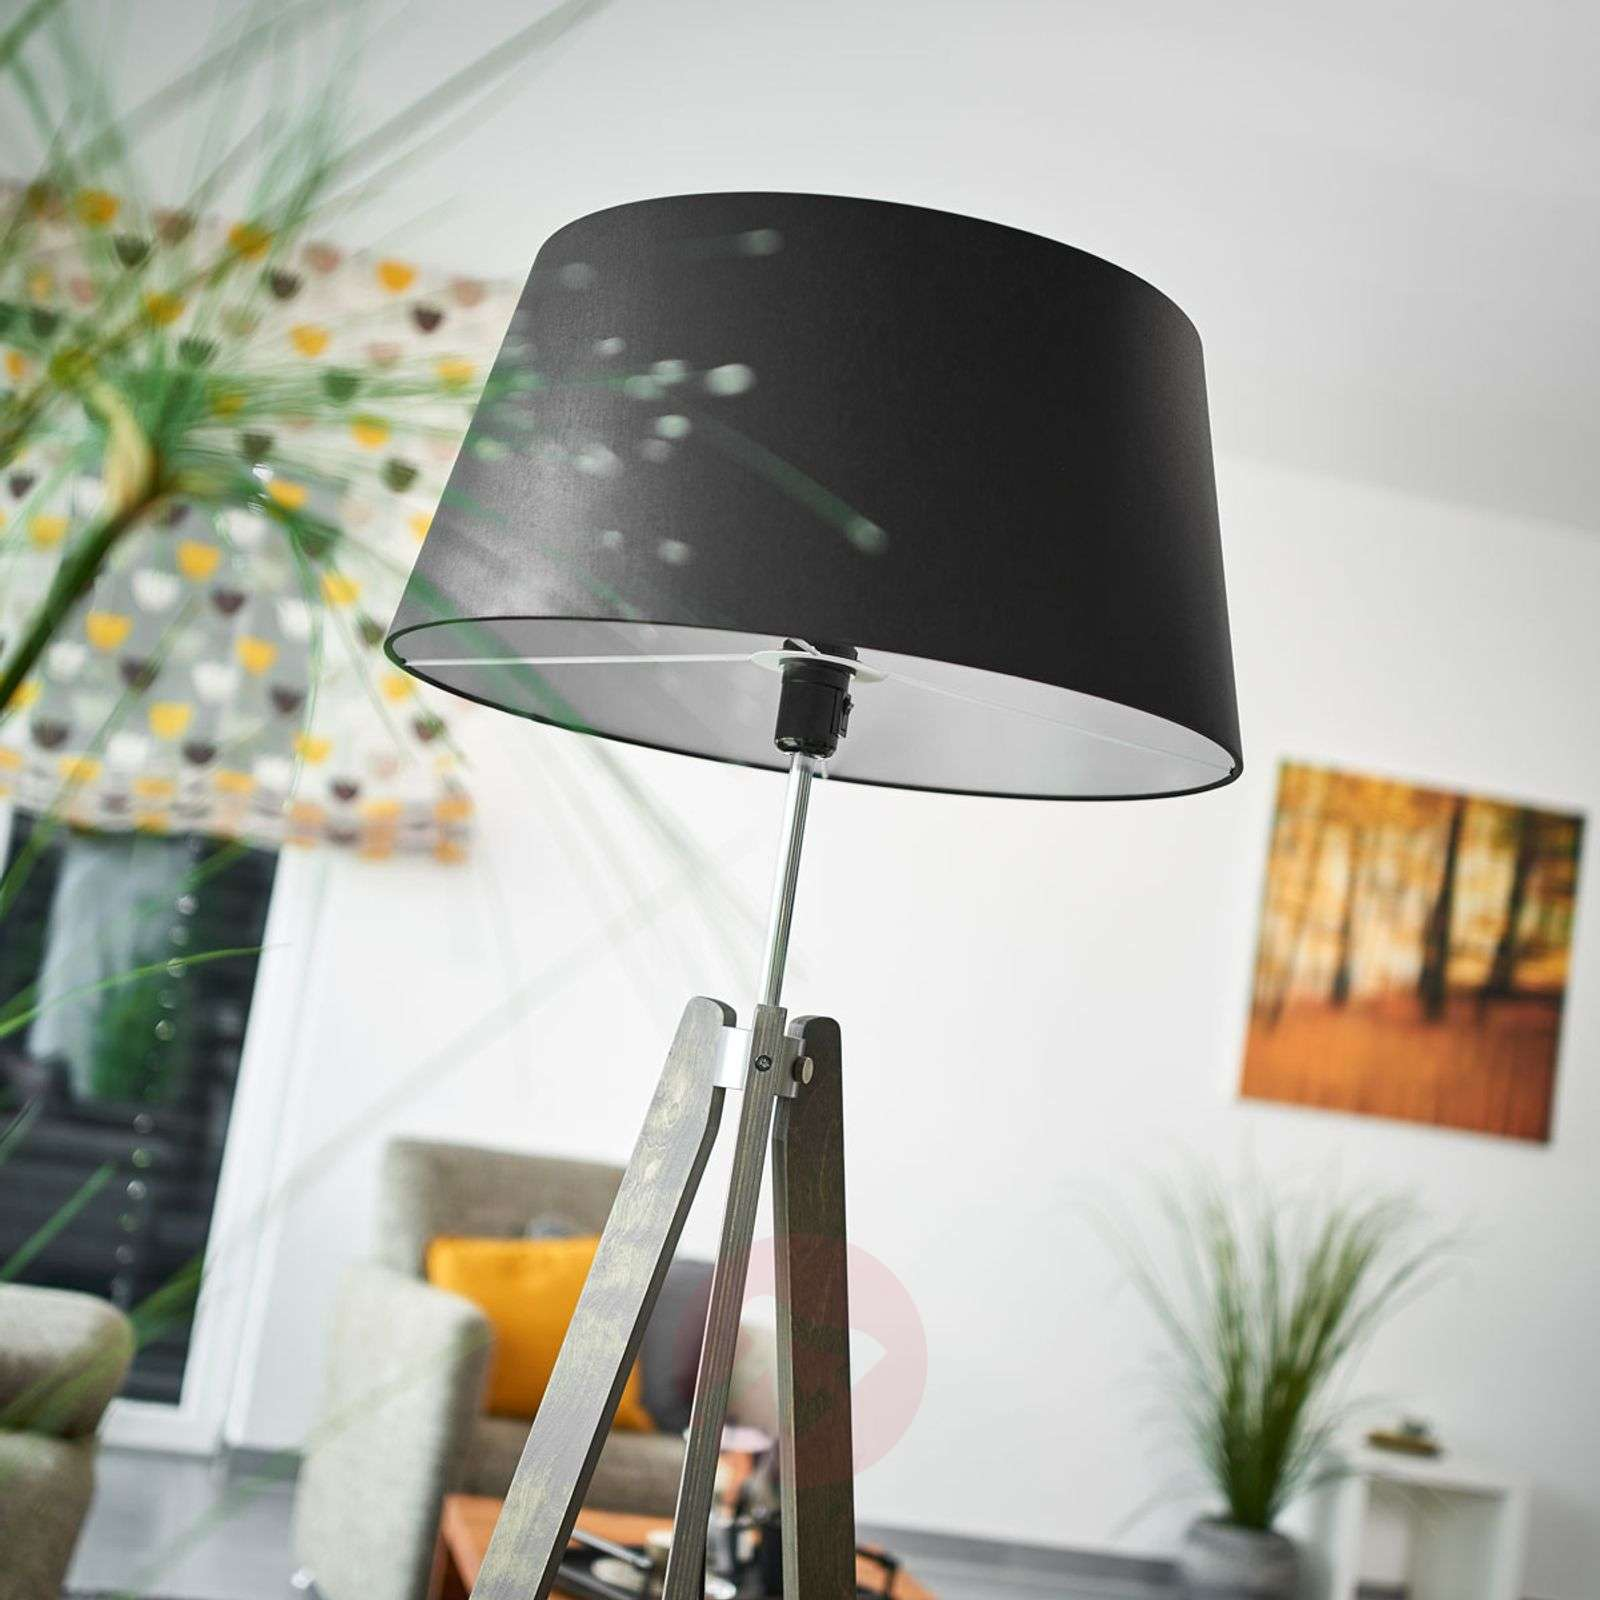 Thea wooden floor lamp with black chintz shade-6722429-01